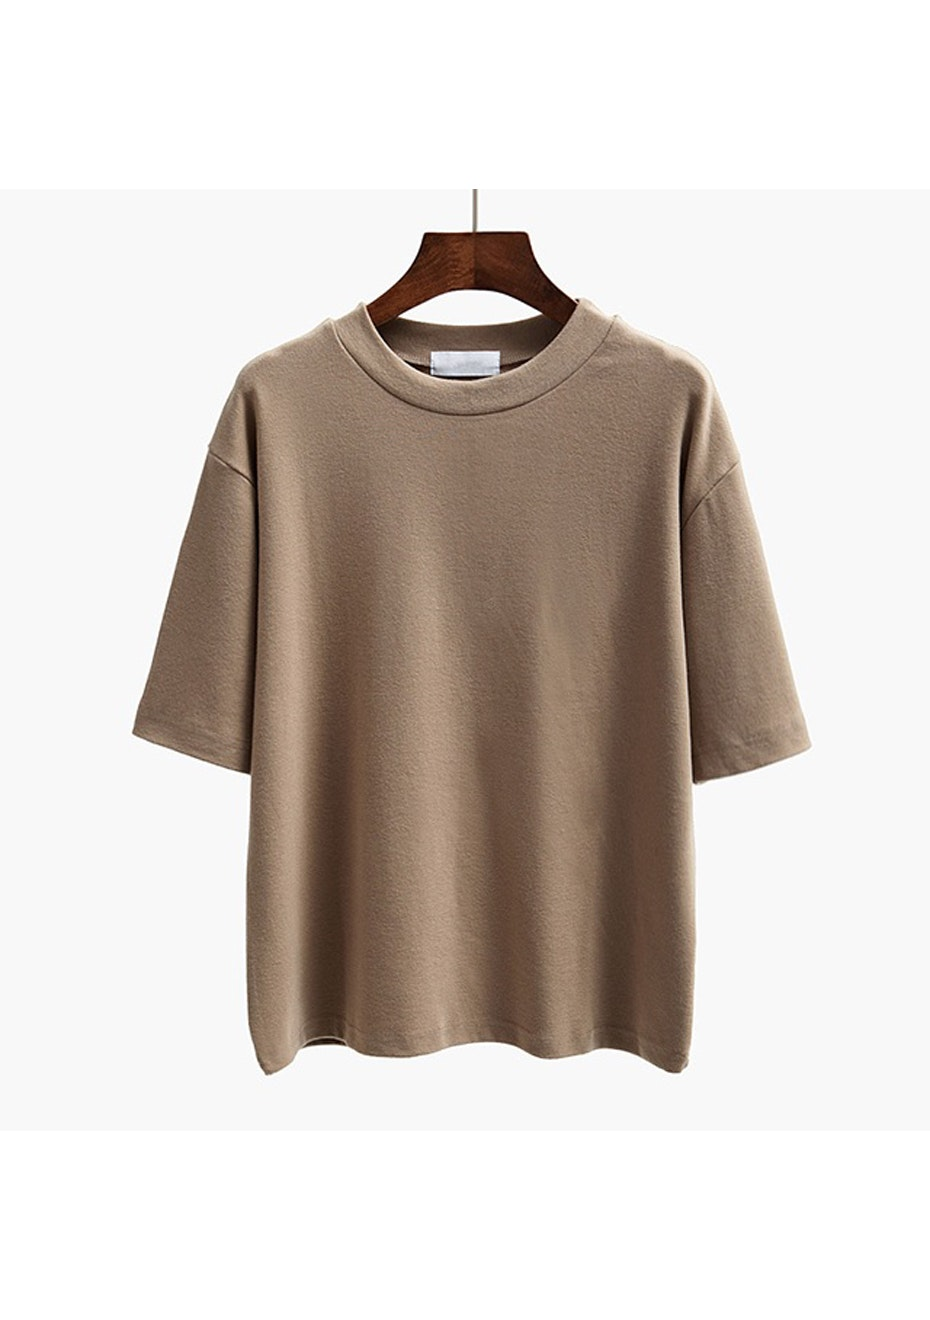 Earthy Tee - Cookie